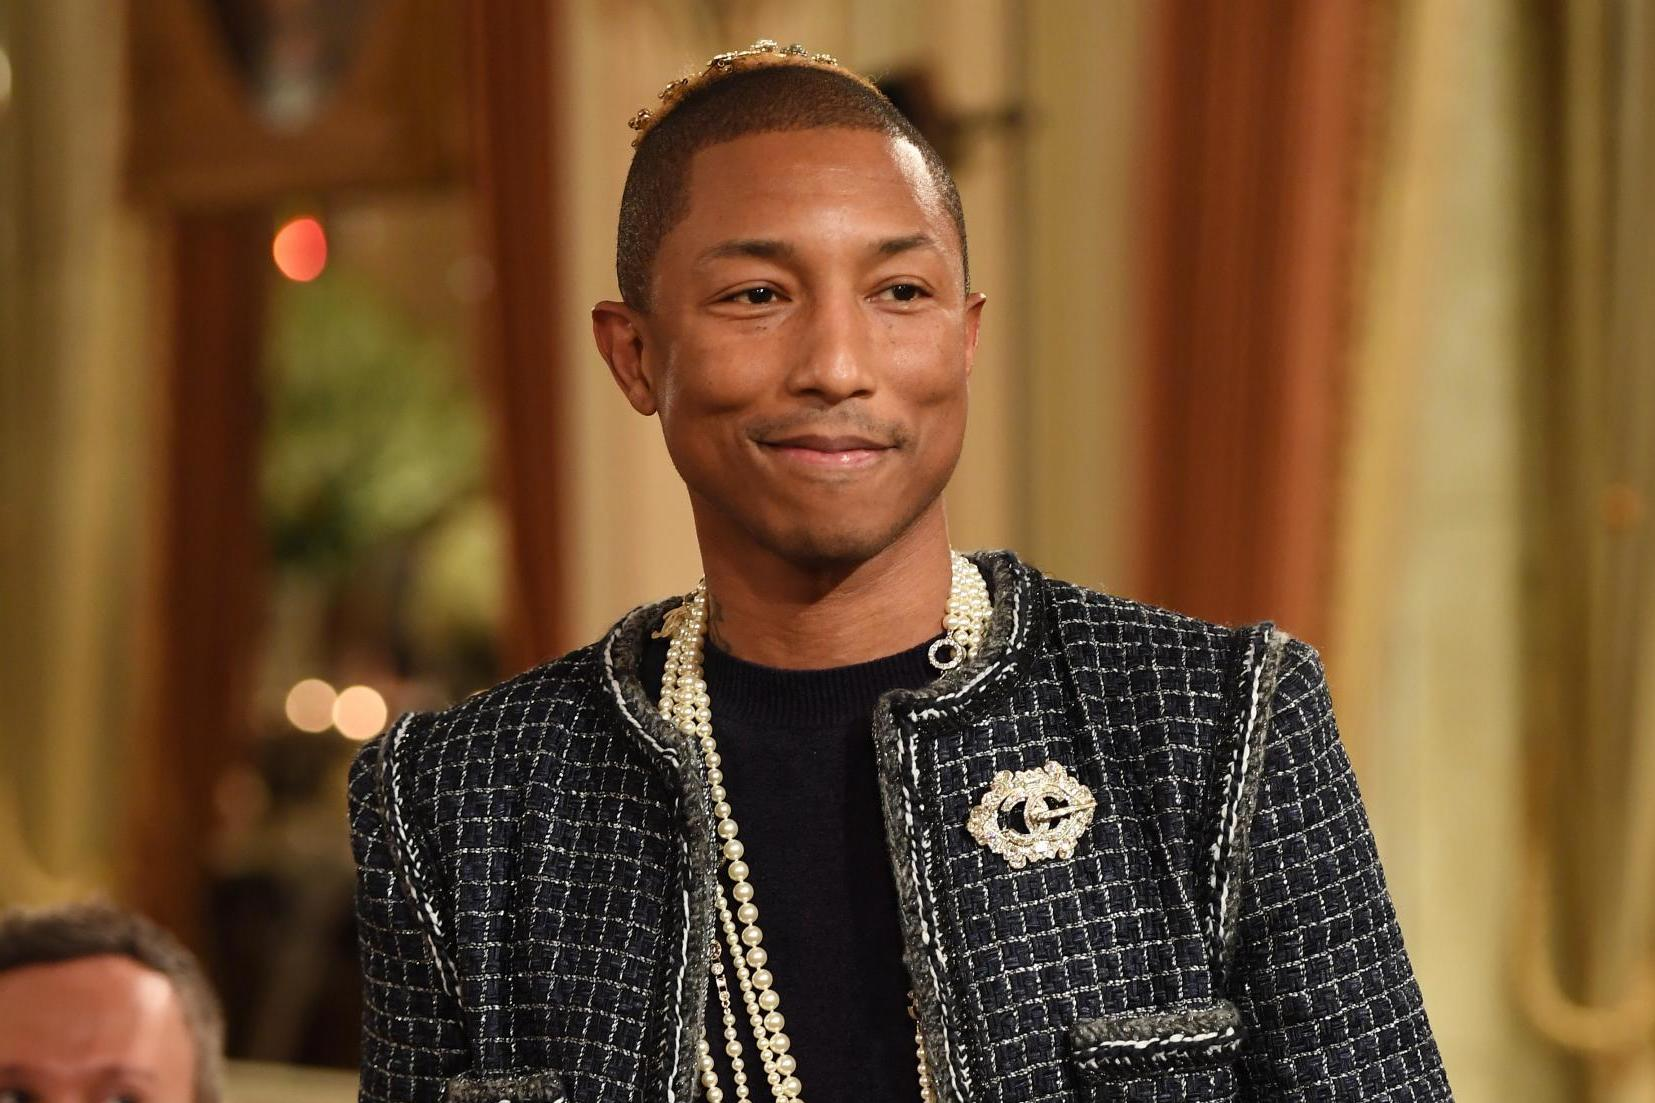 a3f63d70c8885 Pharrell Williams teases new Chanel collaboration in short film ...